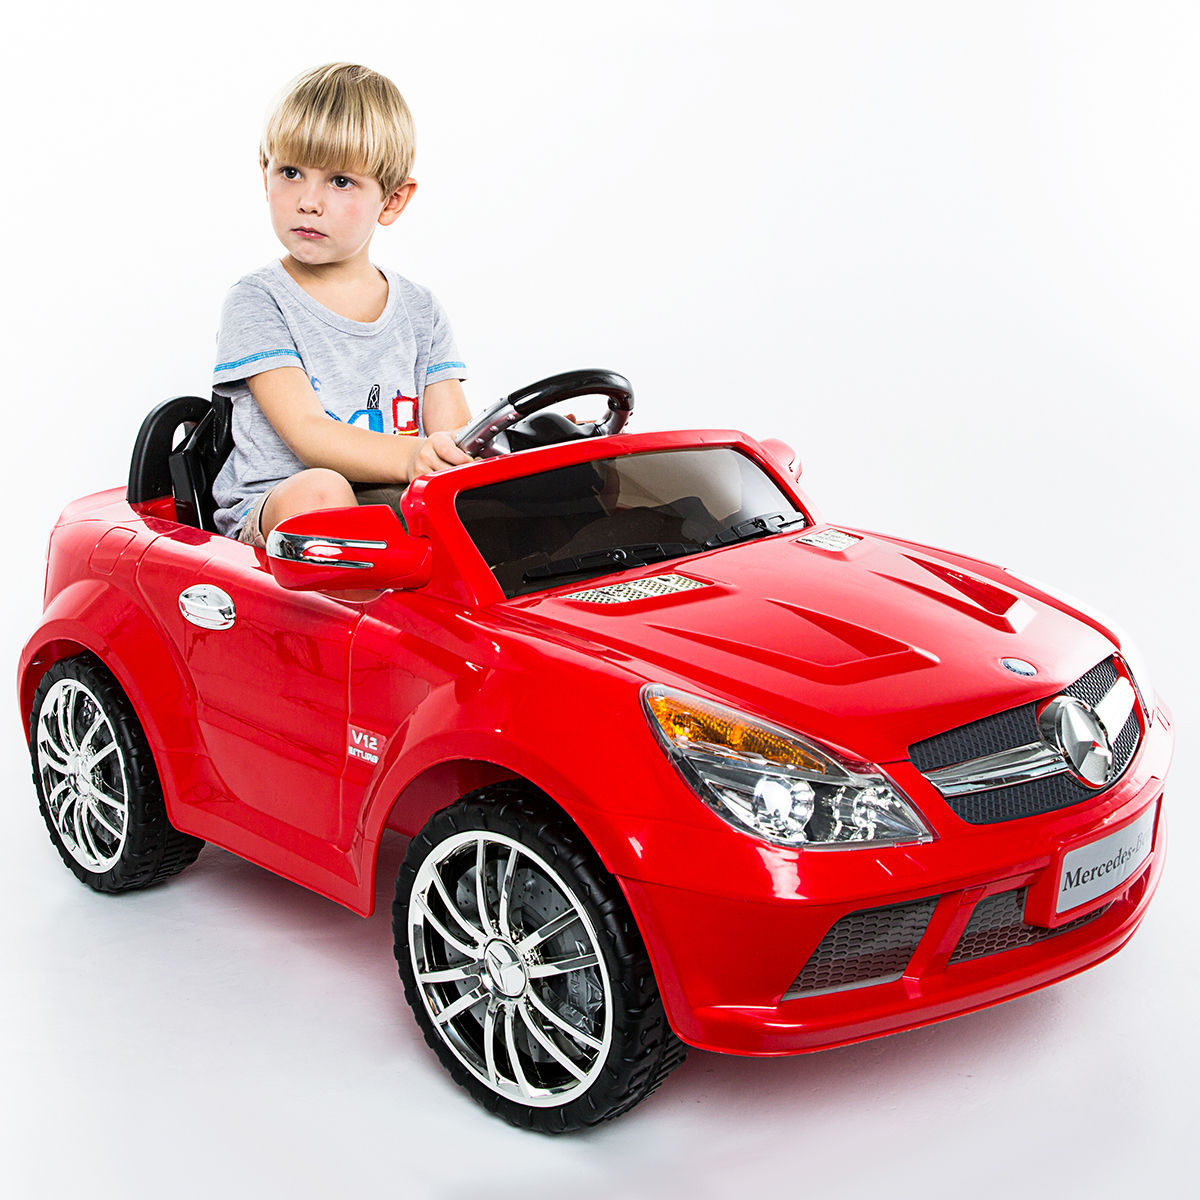 Costway 12V Mercedes-Benz SL65 Electric Kids Ride On Car Music RC Remote Control Red by Costway